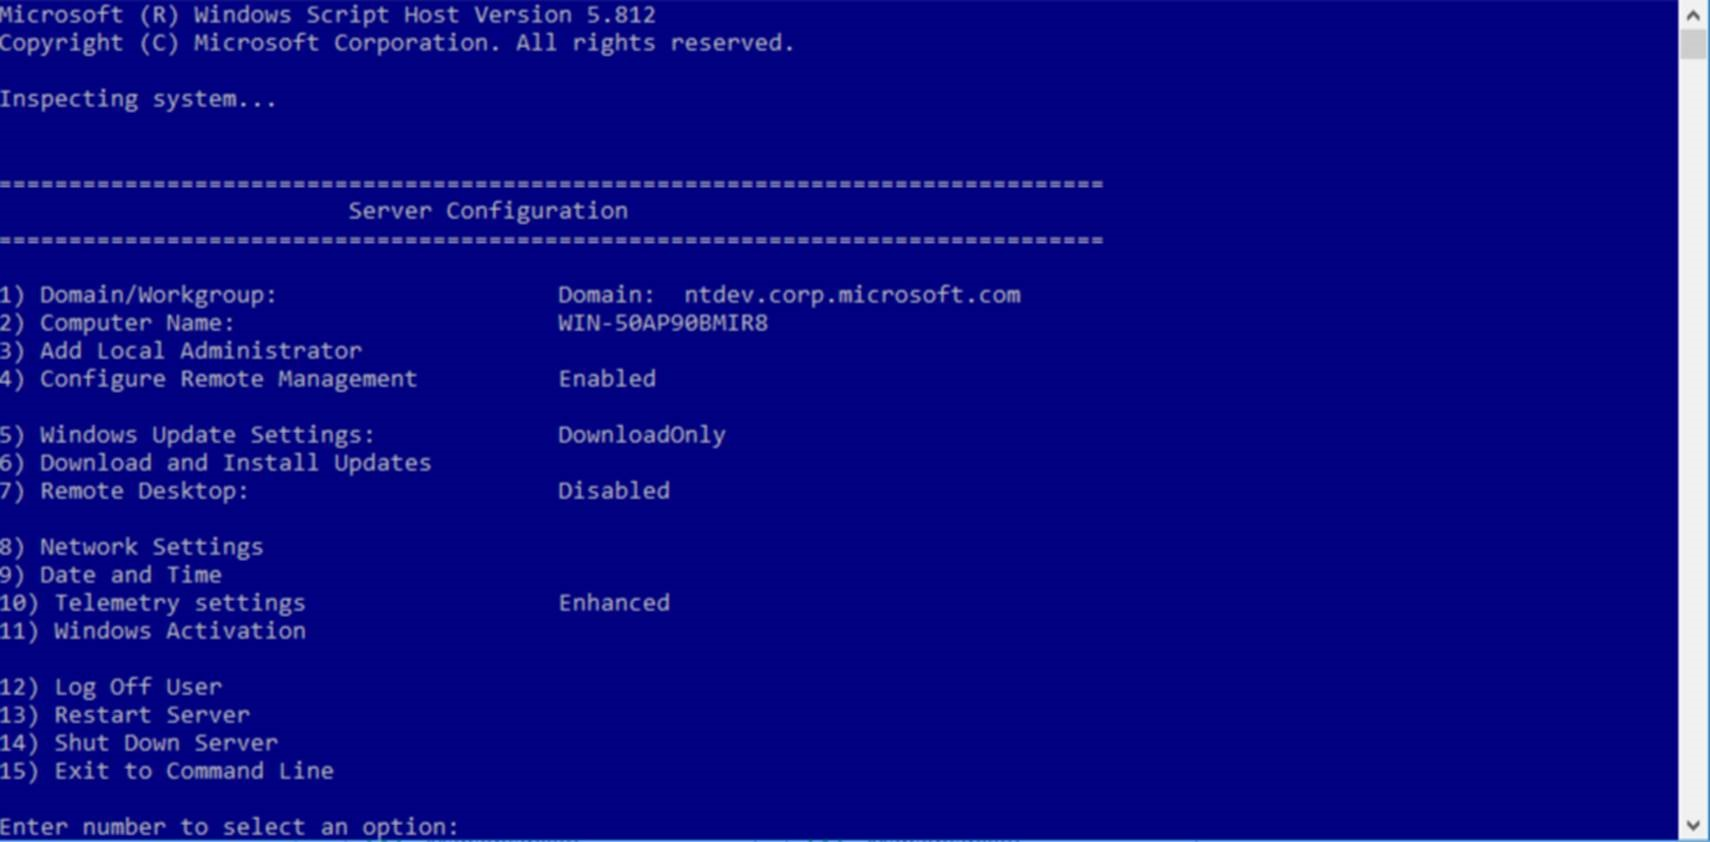 Configure a Server Core installation of Windows Server with